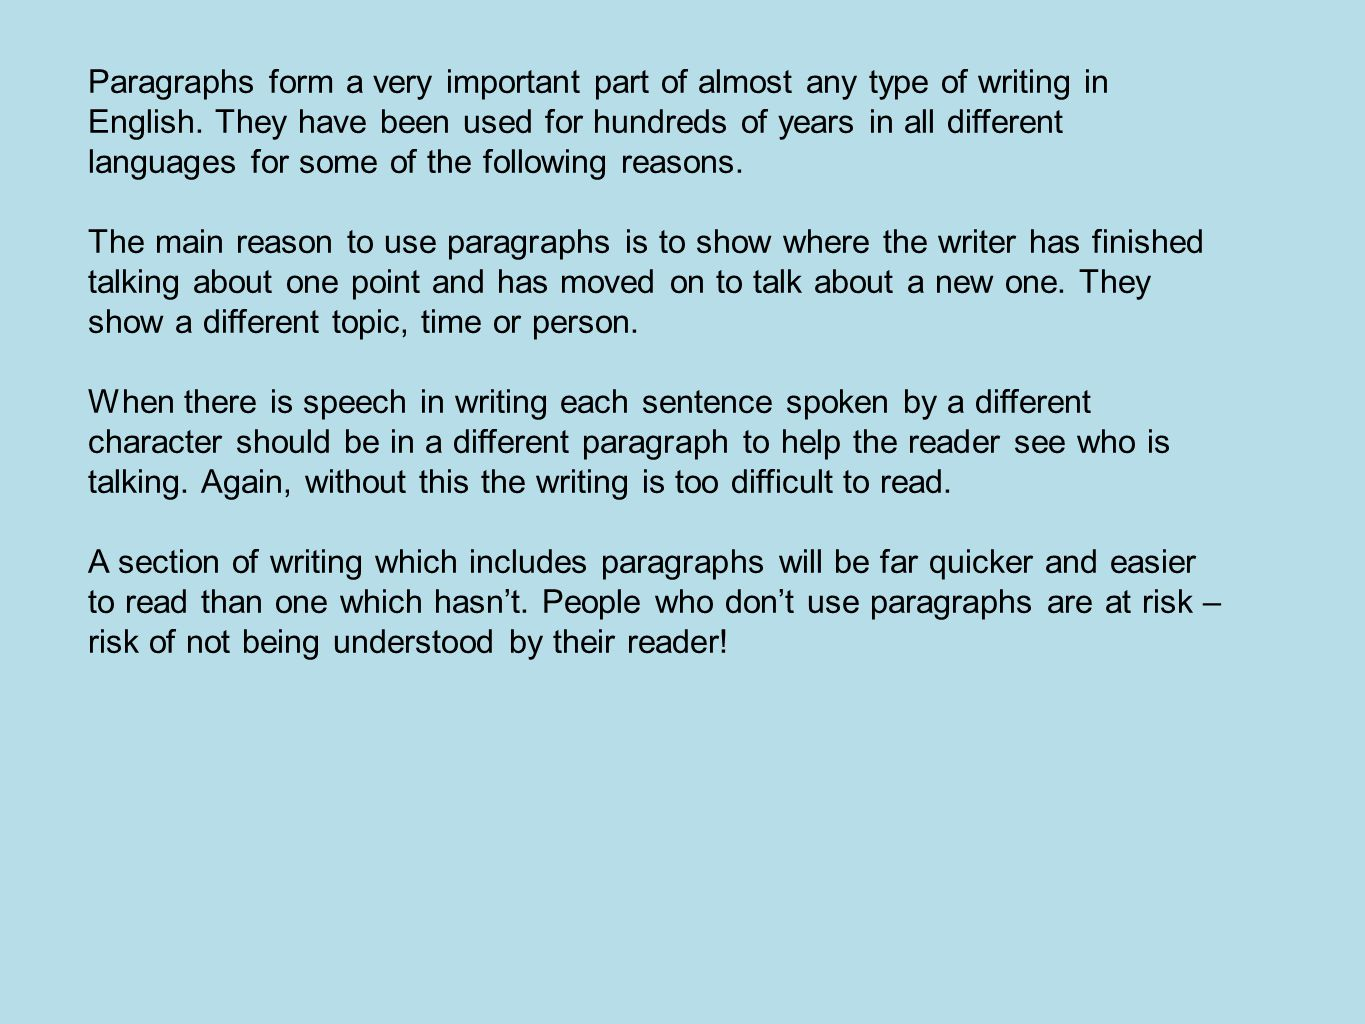 Paragraphs form a very important part of almost any type of writing in English.